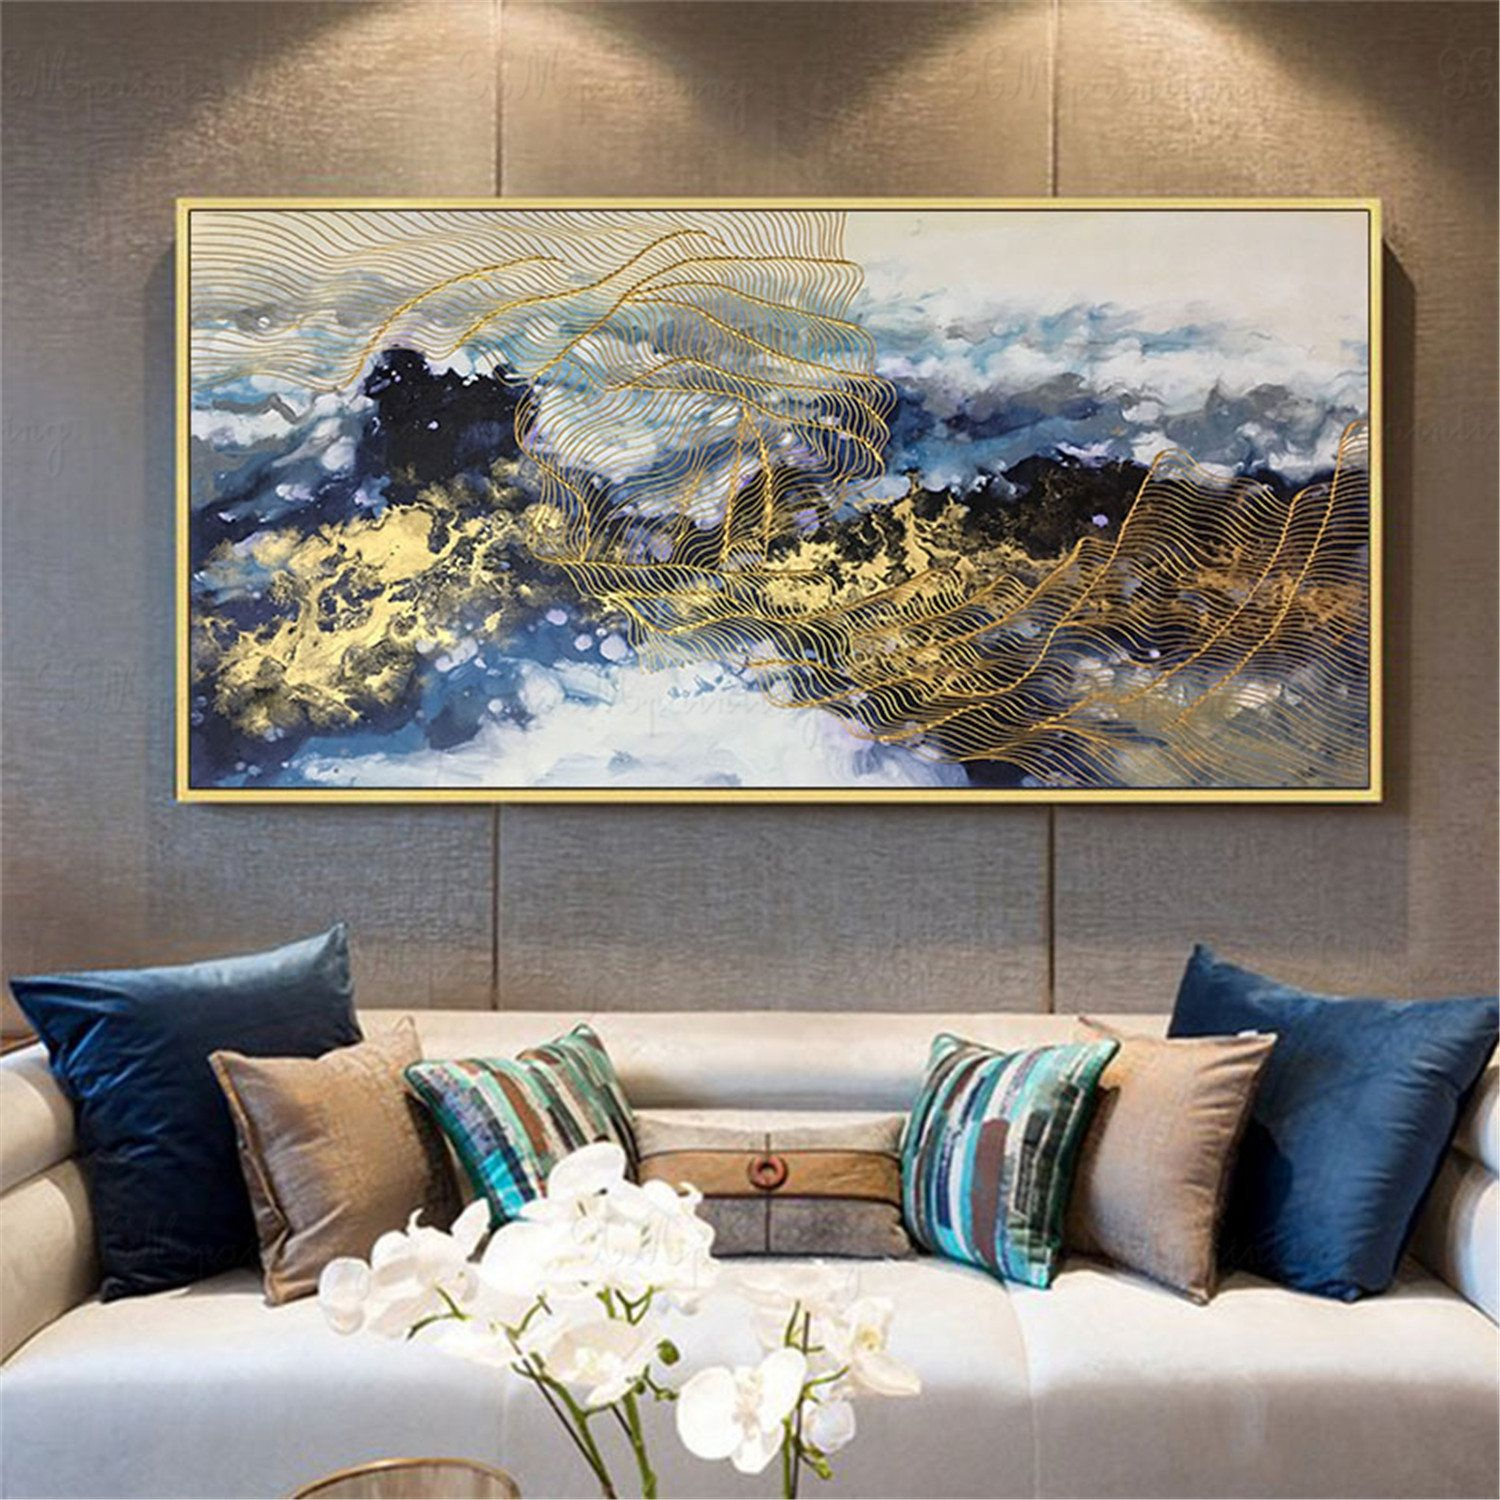 Gold lines abstract painting wall art pictures for living room wall decor home hallway Original acrylic color flow canvas gold art texture